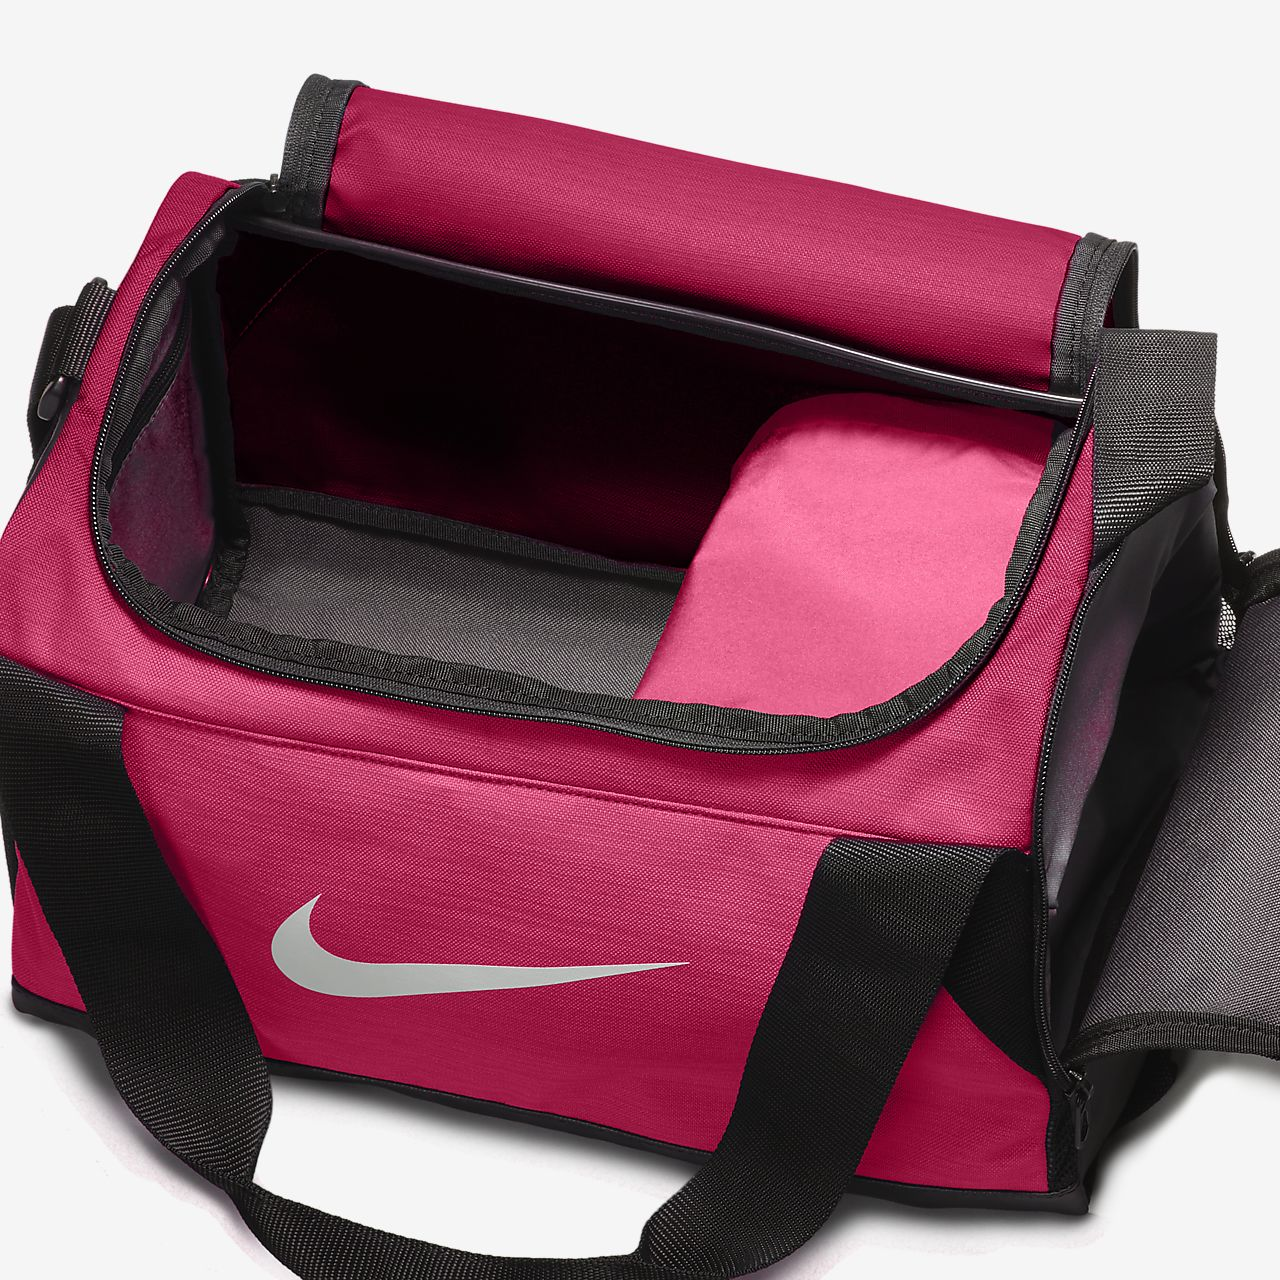 7a9543467275 ... Nike Brasilia (Extra Small) Training Duffel Bag